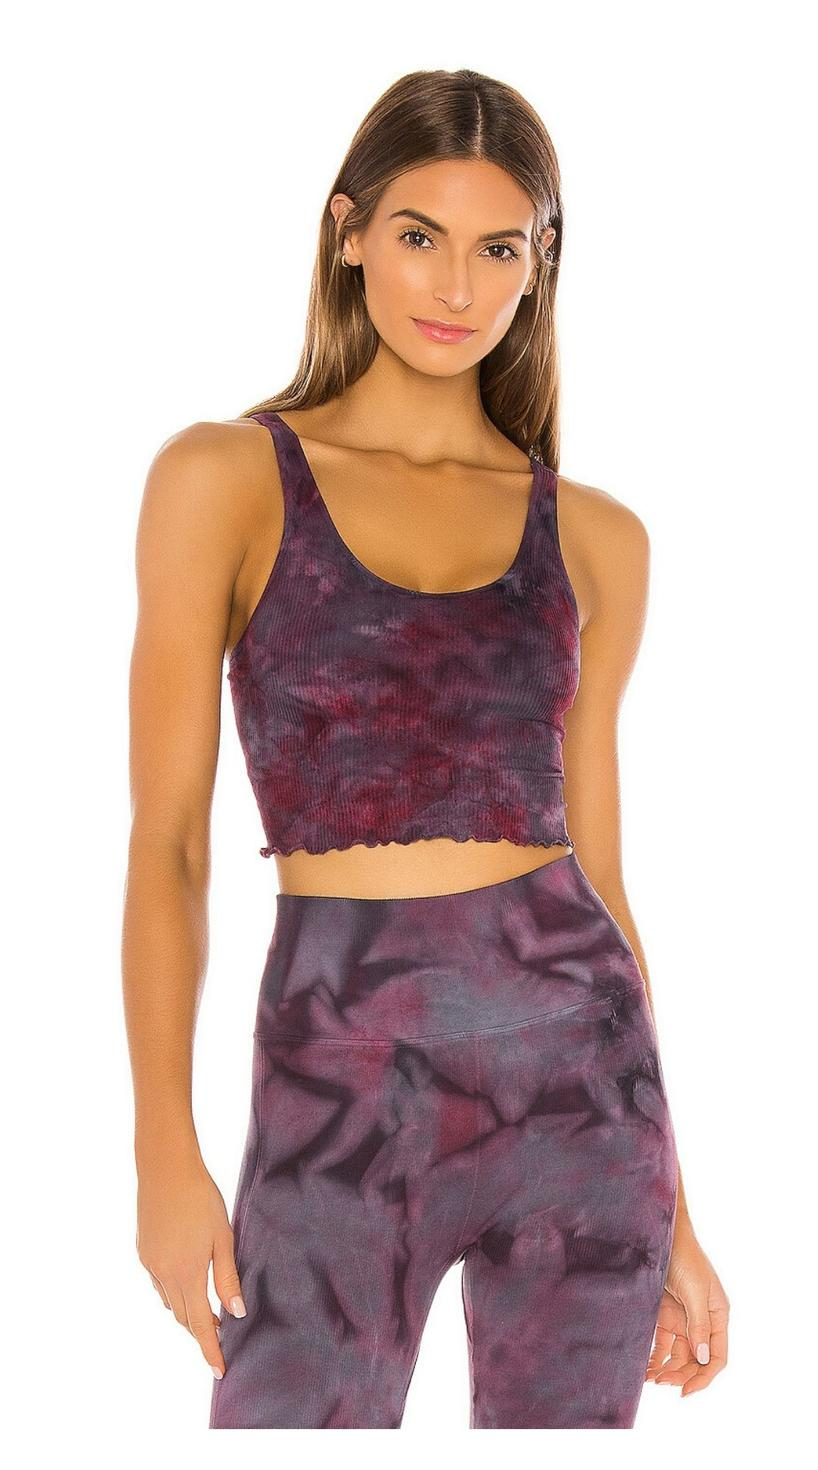 Sustainable activewear, Eco-friendly activewear, Cruelty-free activewear, Recycled activewear, Save the earth, Save the planet, Go green